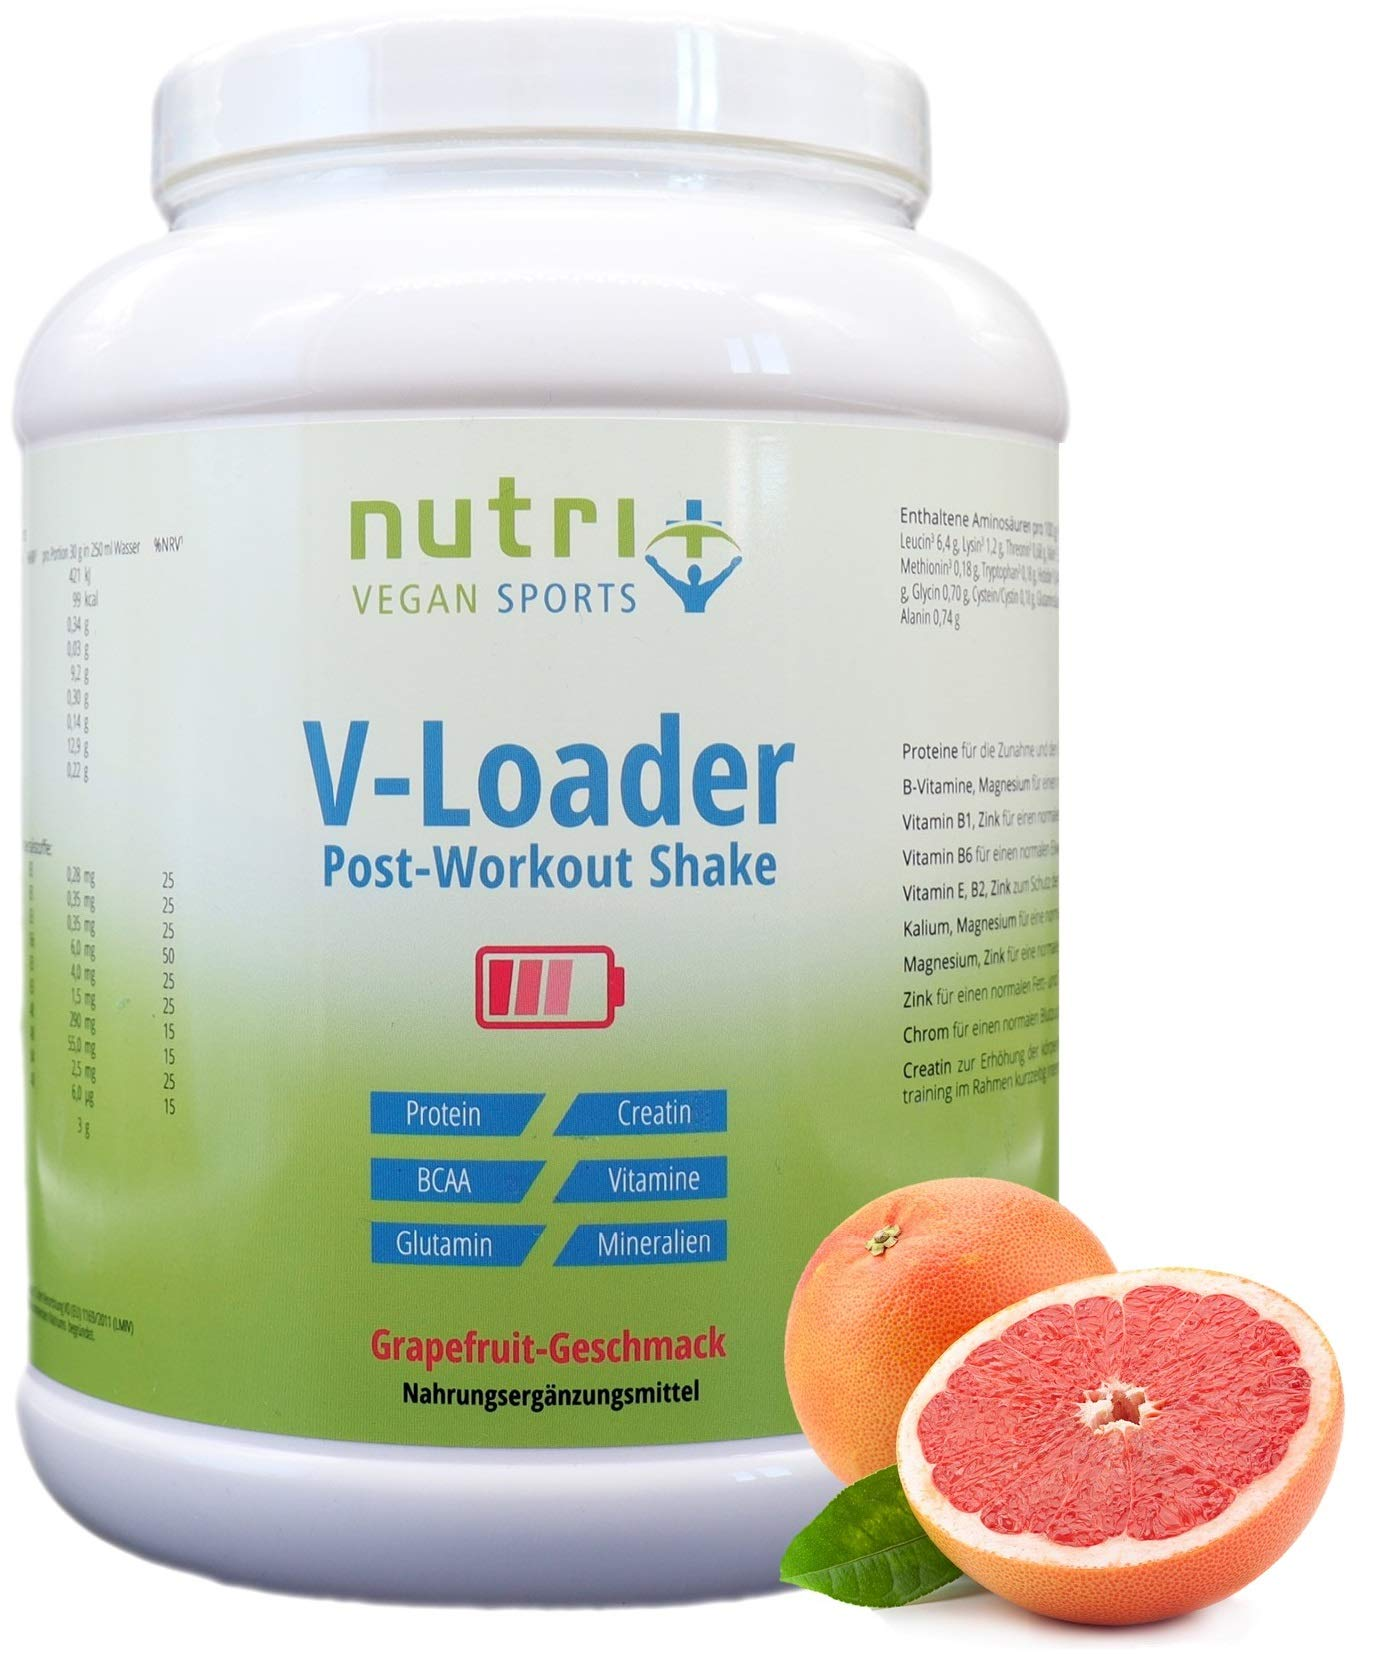 Recovery Drink After Workout Shake – V-Loader Post-Workout Supplement Vegan – 750g Grapefruit Pulver – Maltodextrin – Protein-Pulver – BCAA – Creatin-Monohydrat – L-Glutamin